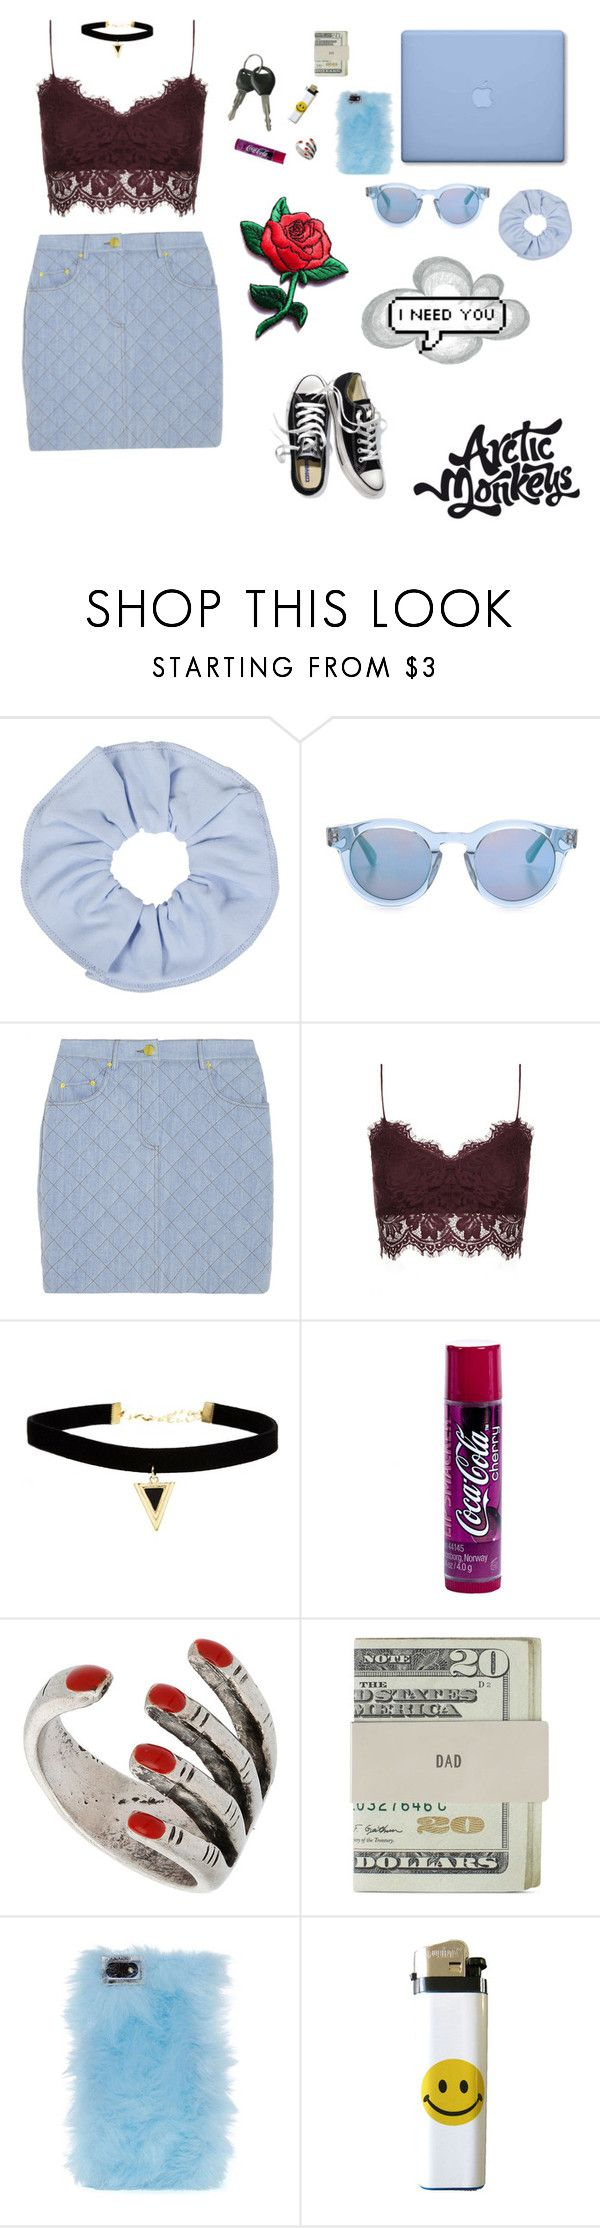 """stacys mom"" by wallowingwillow ❤ liked on Polyvore featuring Sunday Somewhere, Moschino, Topshop, ASOS, Jack Spade, Skinnydip and Victoria's Secret"